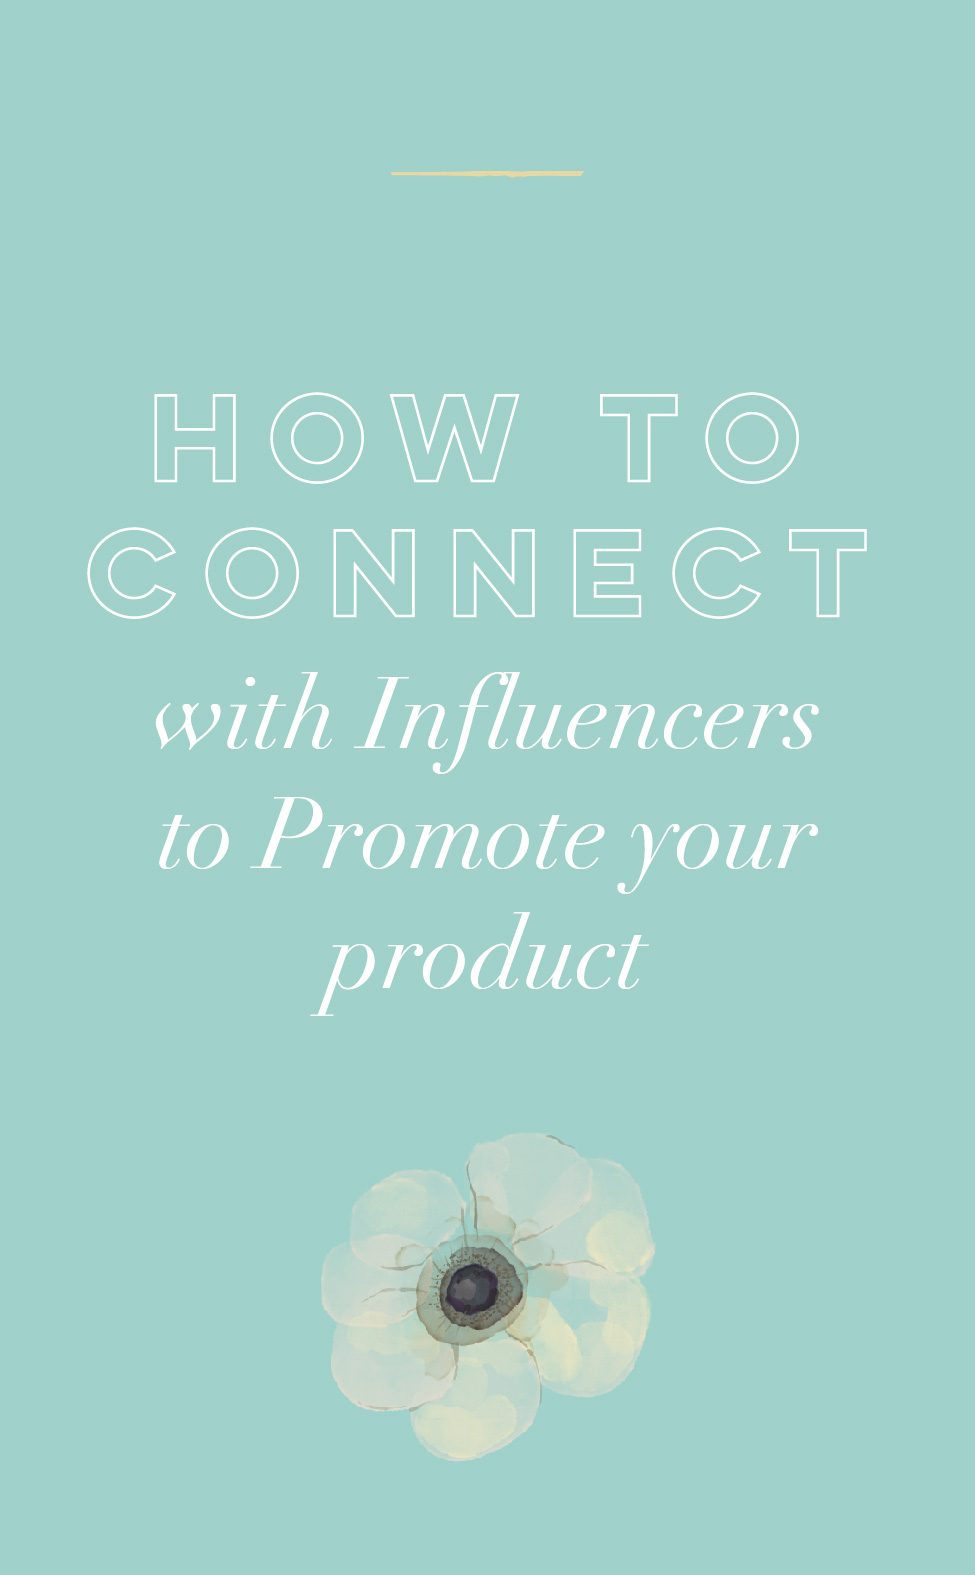 howtoconnectwithinfluencers.jpg